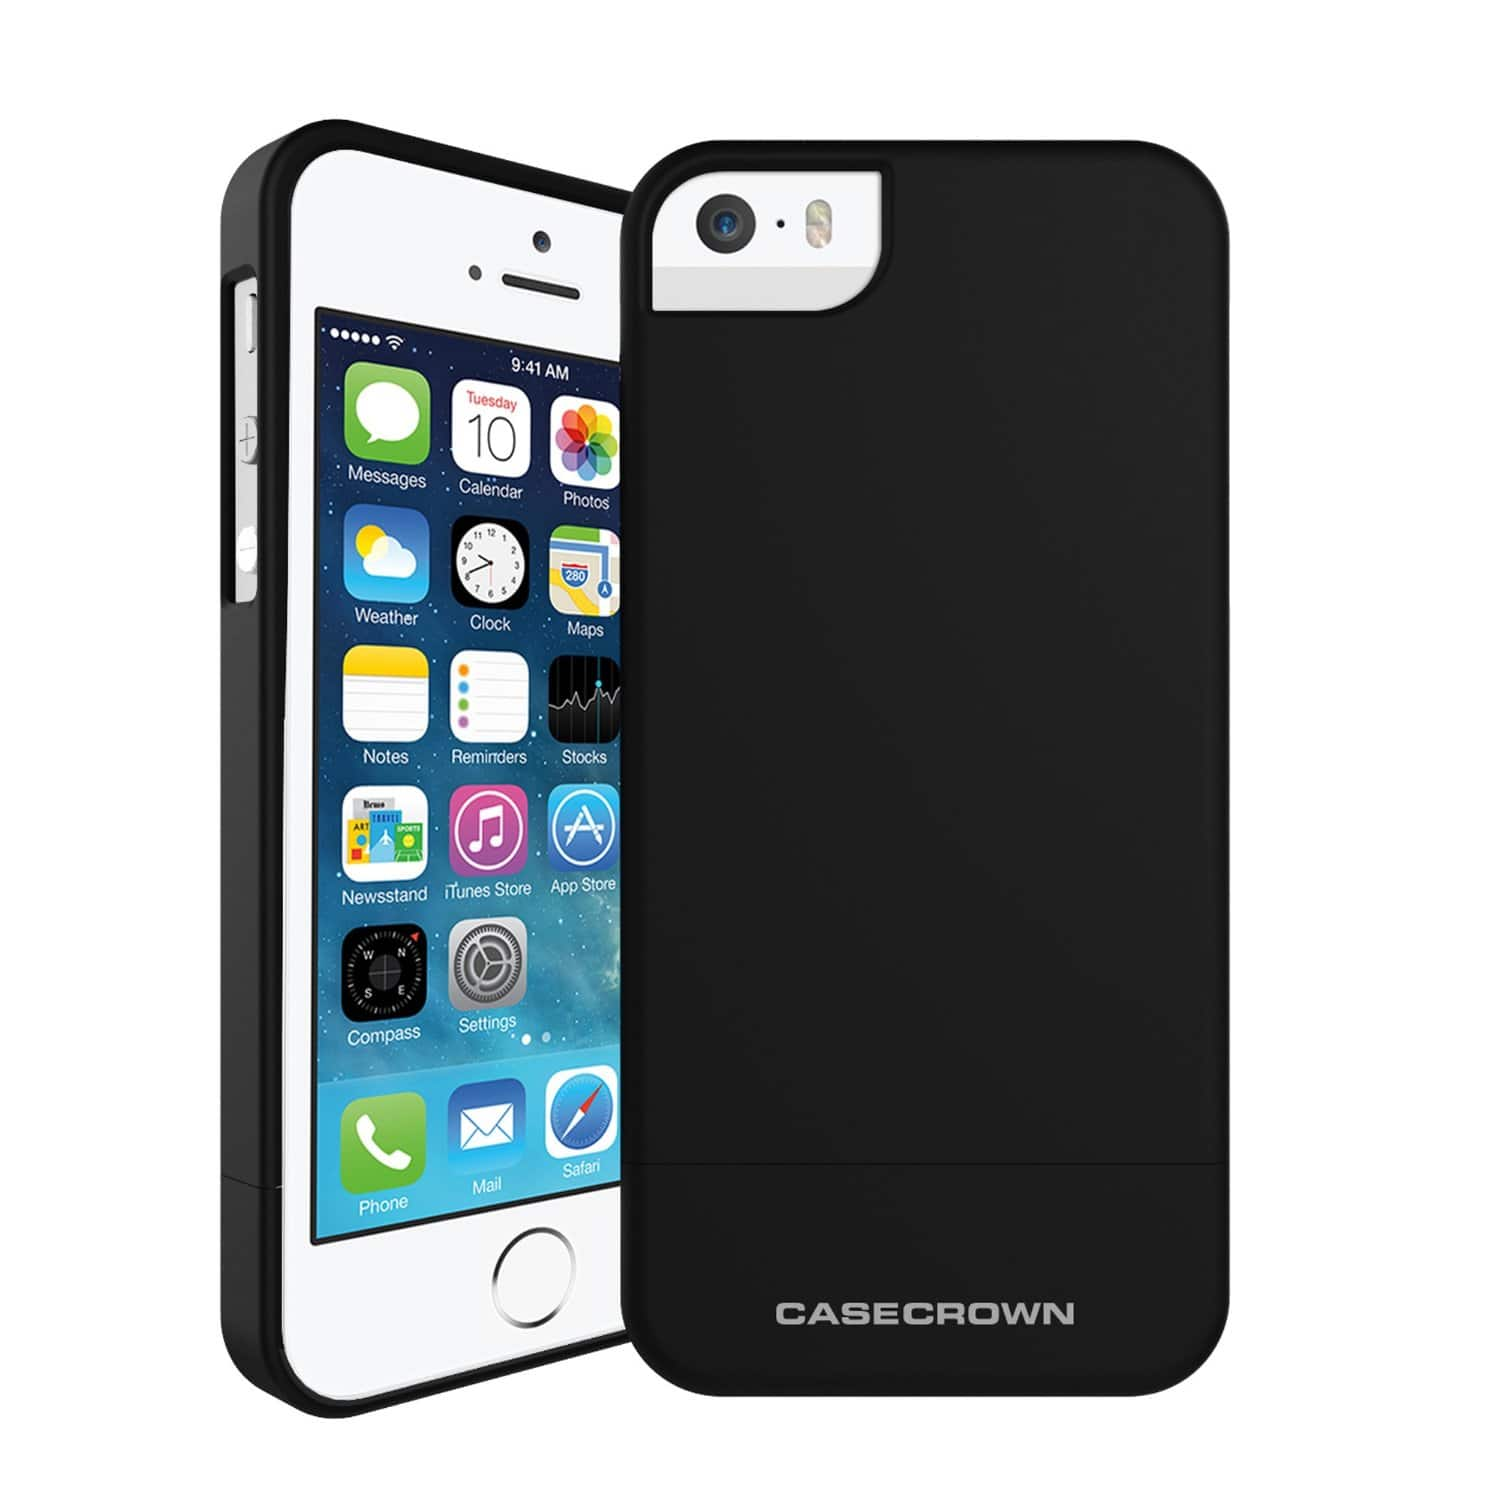 CaseCrown iPhone SE Cases (various colors) $3 + Free Shipping & More